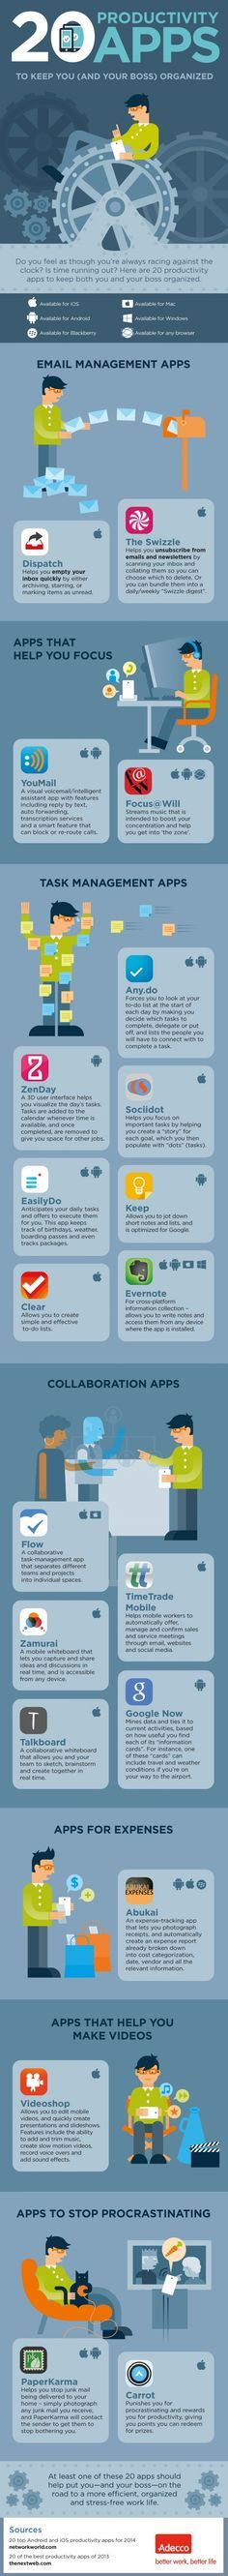 20 Productivity Apps To Keep You (And Your Boss) Organized --shared by Neomam on Jul 11, 2014 - See more at: http://visual.ly/20-productivity-apps-keep-you-and-your-boss-organized#sthash.YjMudZrY.dpuf